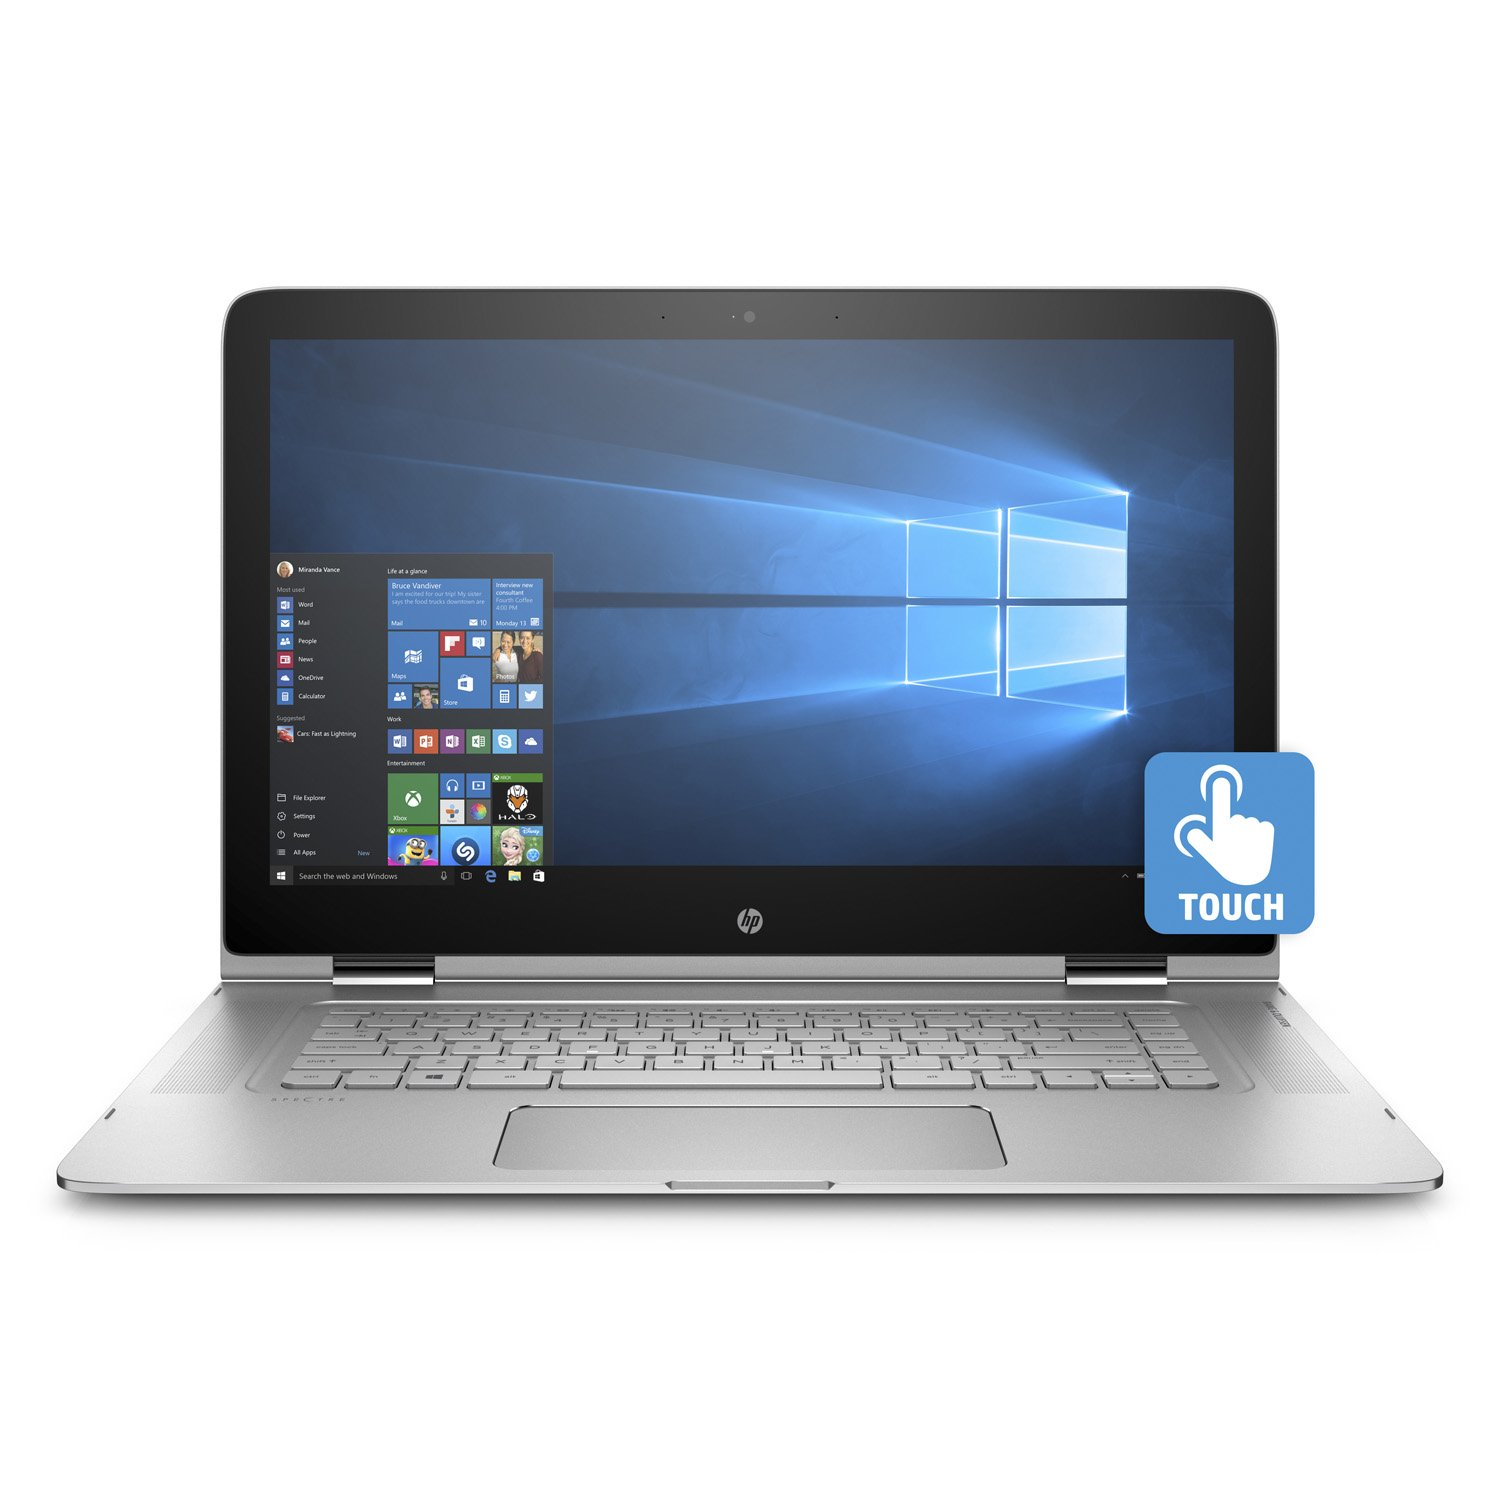 Image Result For Buy Replacement Windows Online